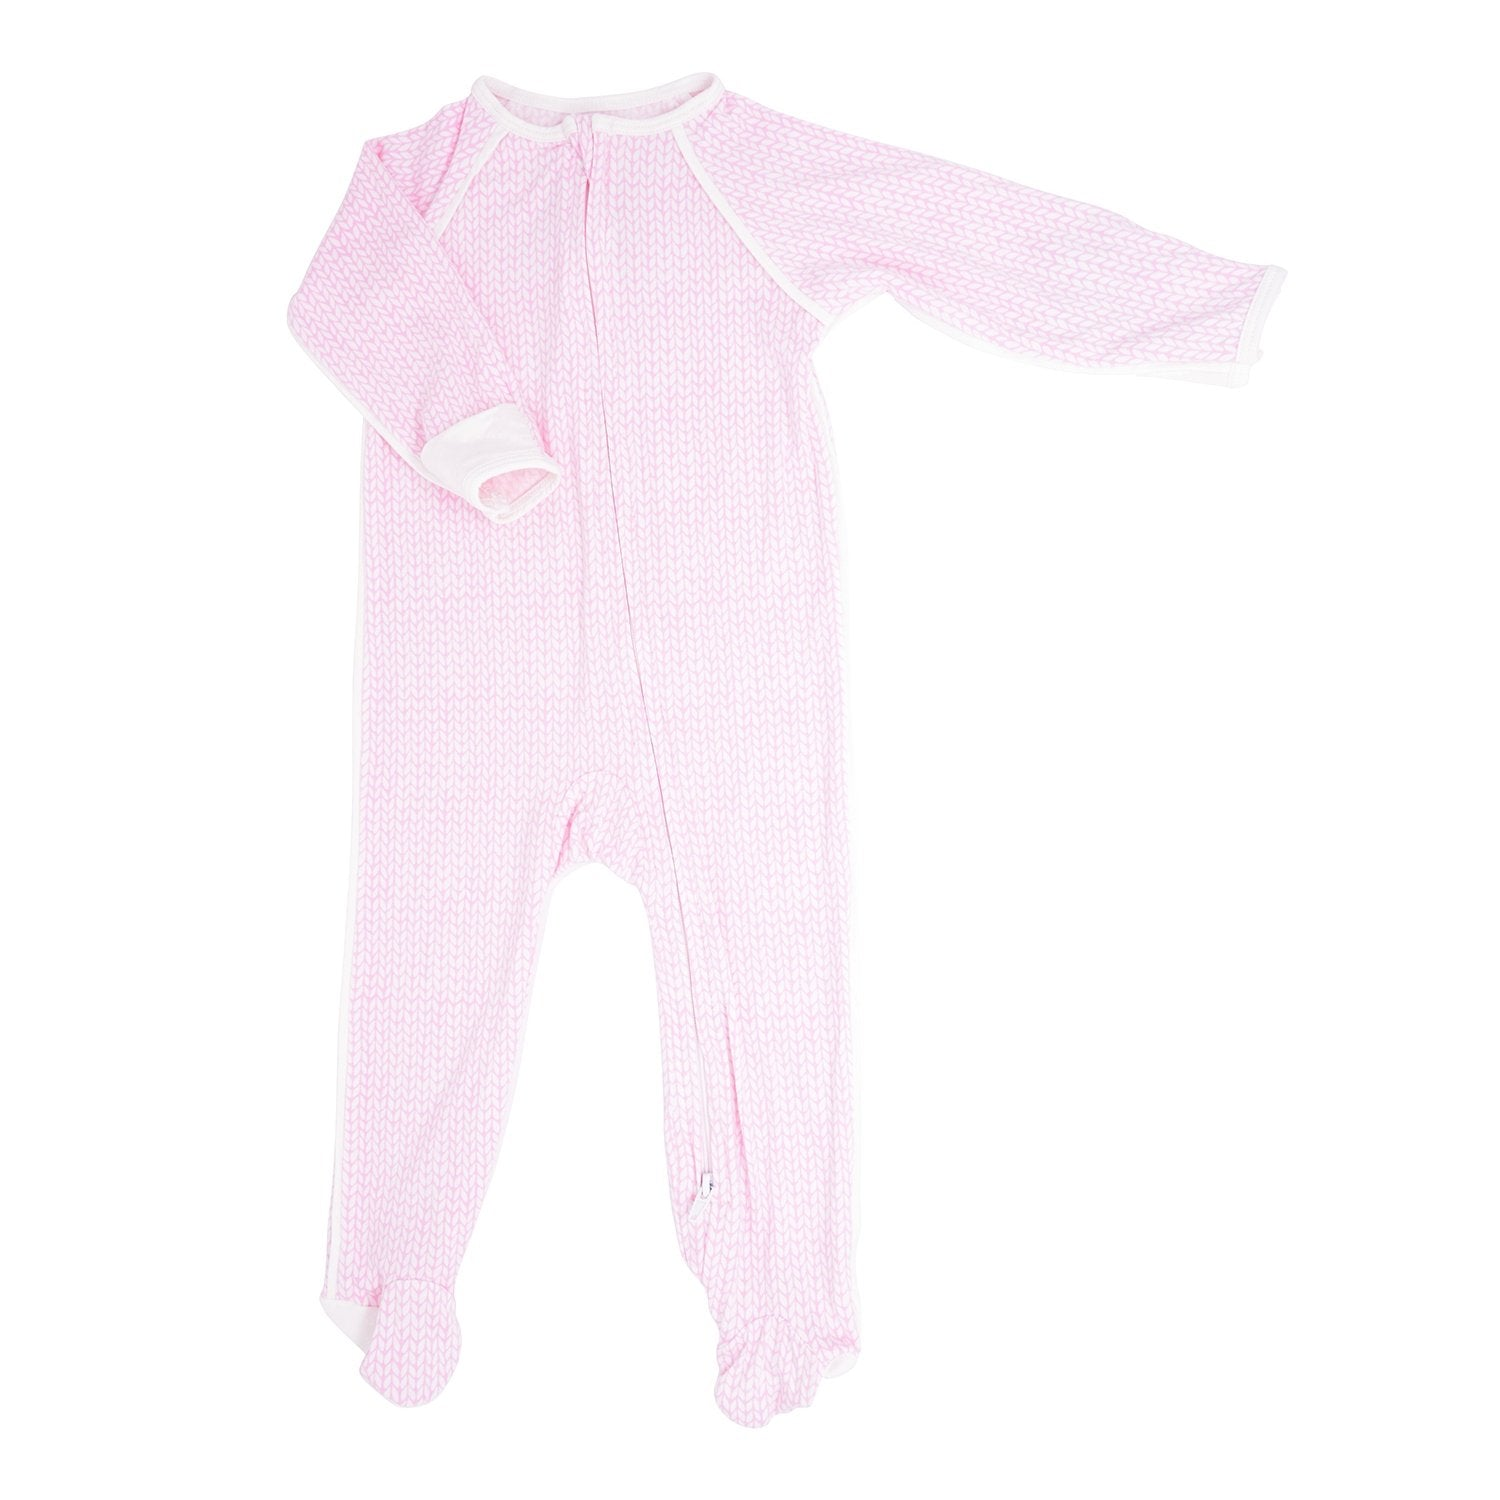 Piped Zipper Footie - Pink Knit Weave - Sweet Bamboo